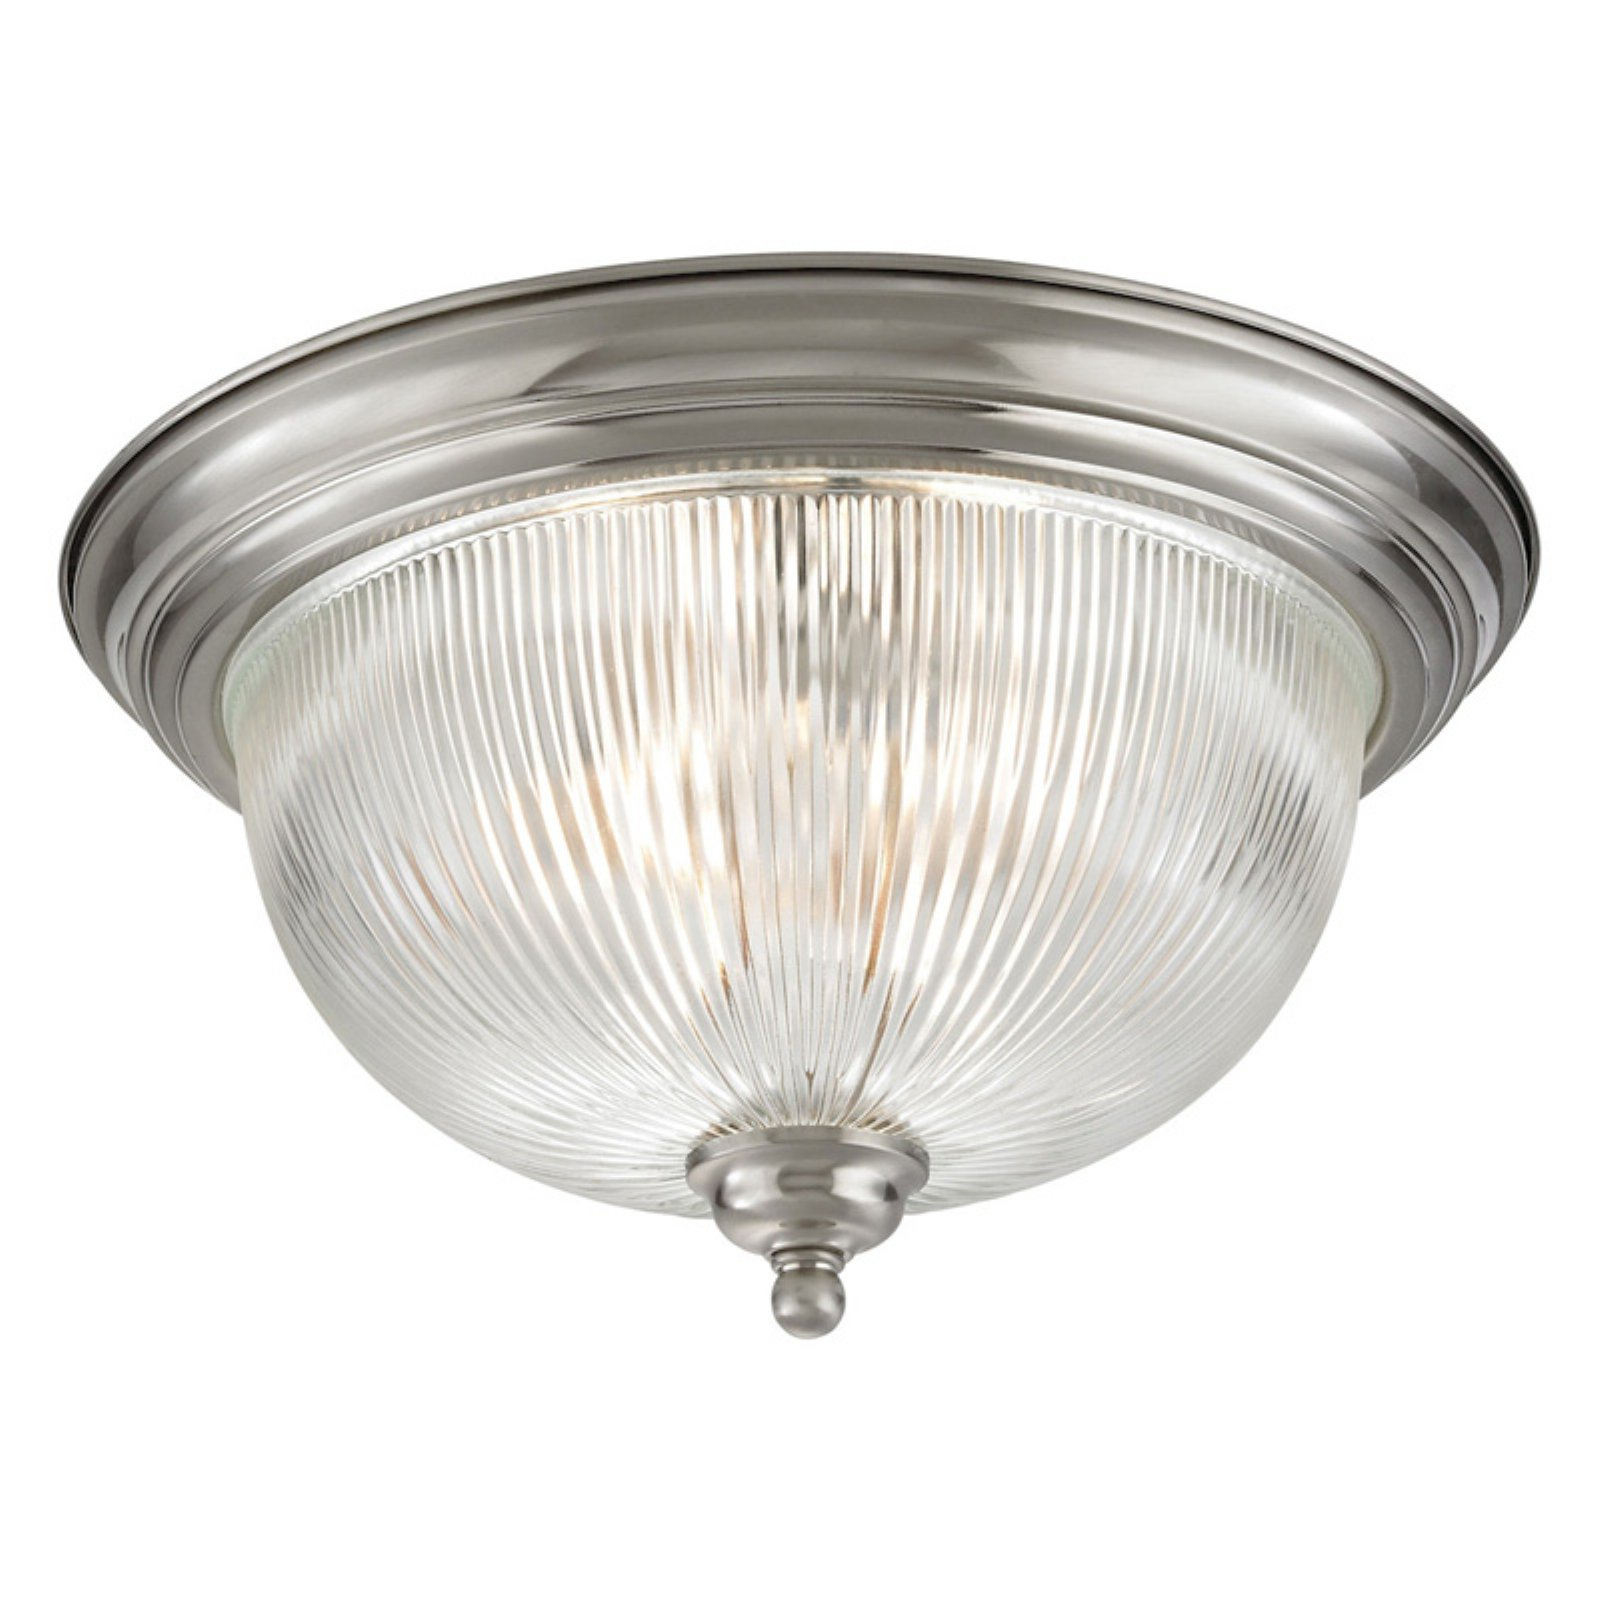 Thomas Lighting Liberty Park 3 Light Flush Mount Ceiling Light by CornerStone